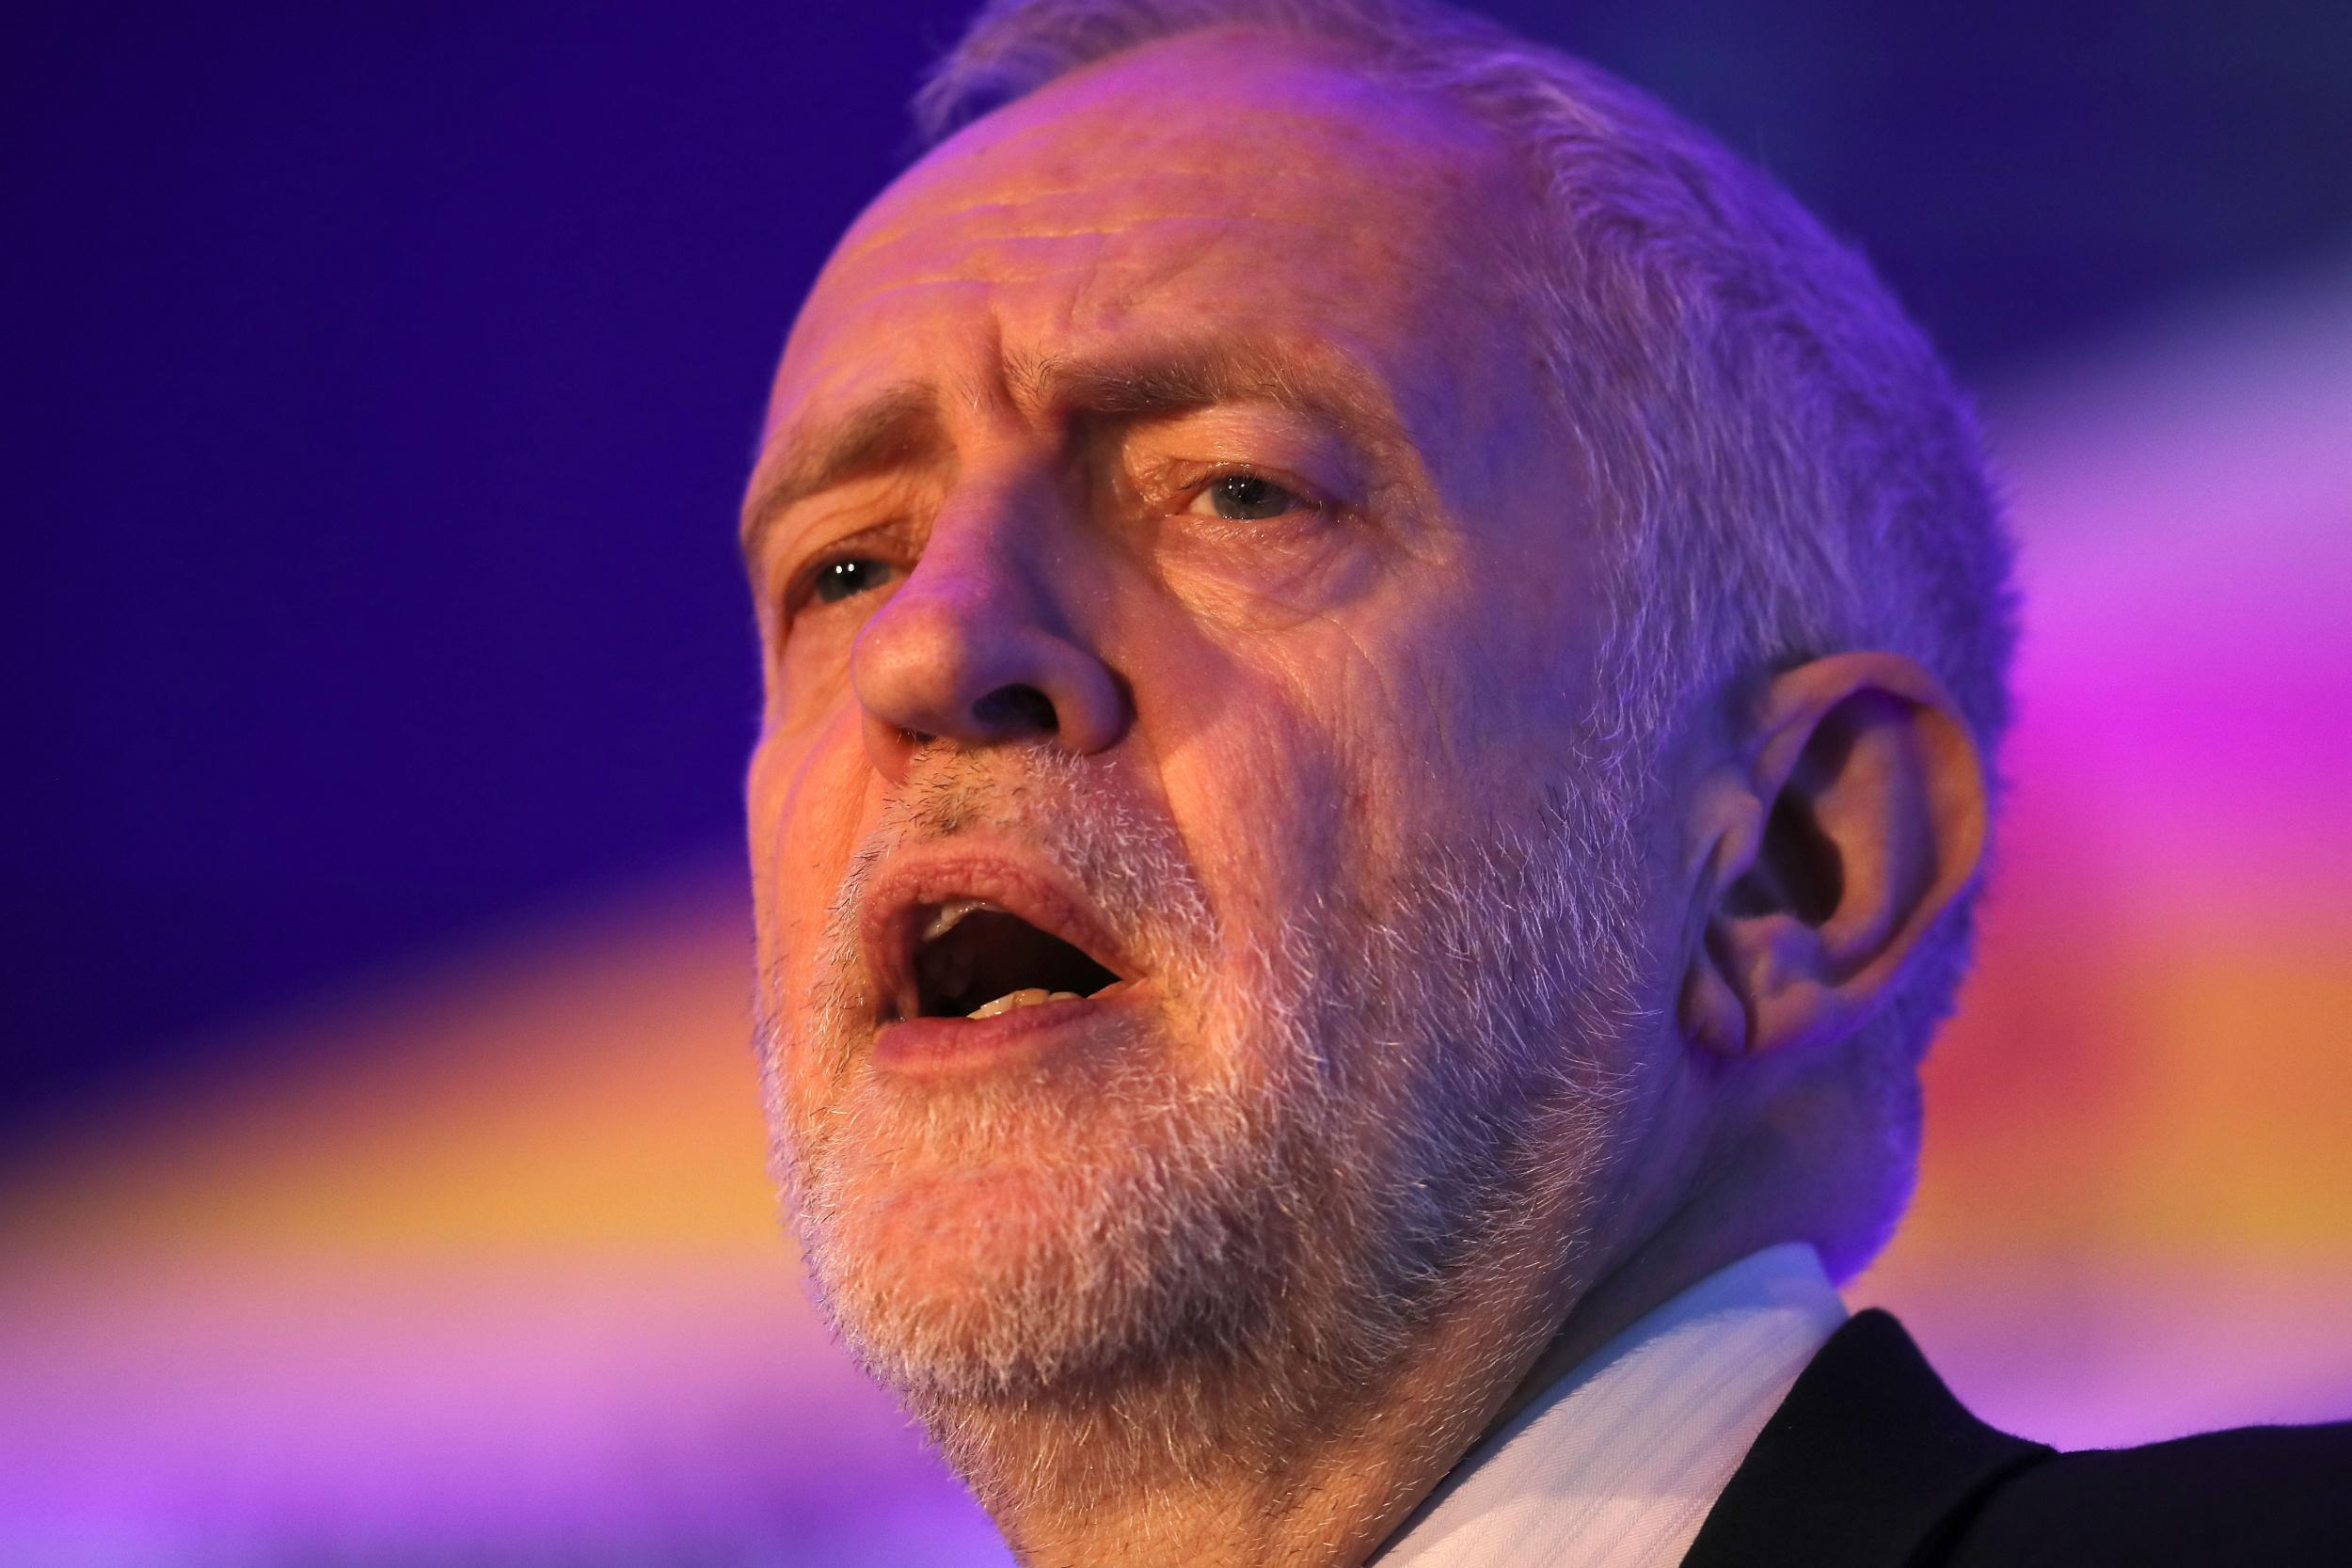 Jeremy 'Stalin' Corbyn really does have some explaining to do now it's clear he gave Czech spies information about Margaret Thatcher's breakfast